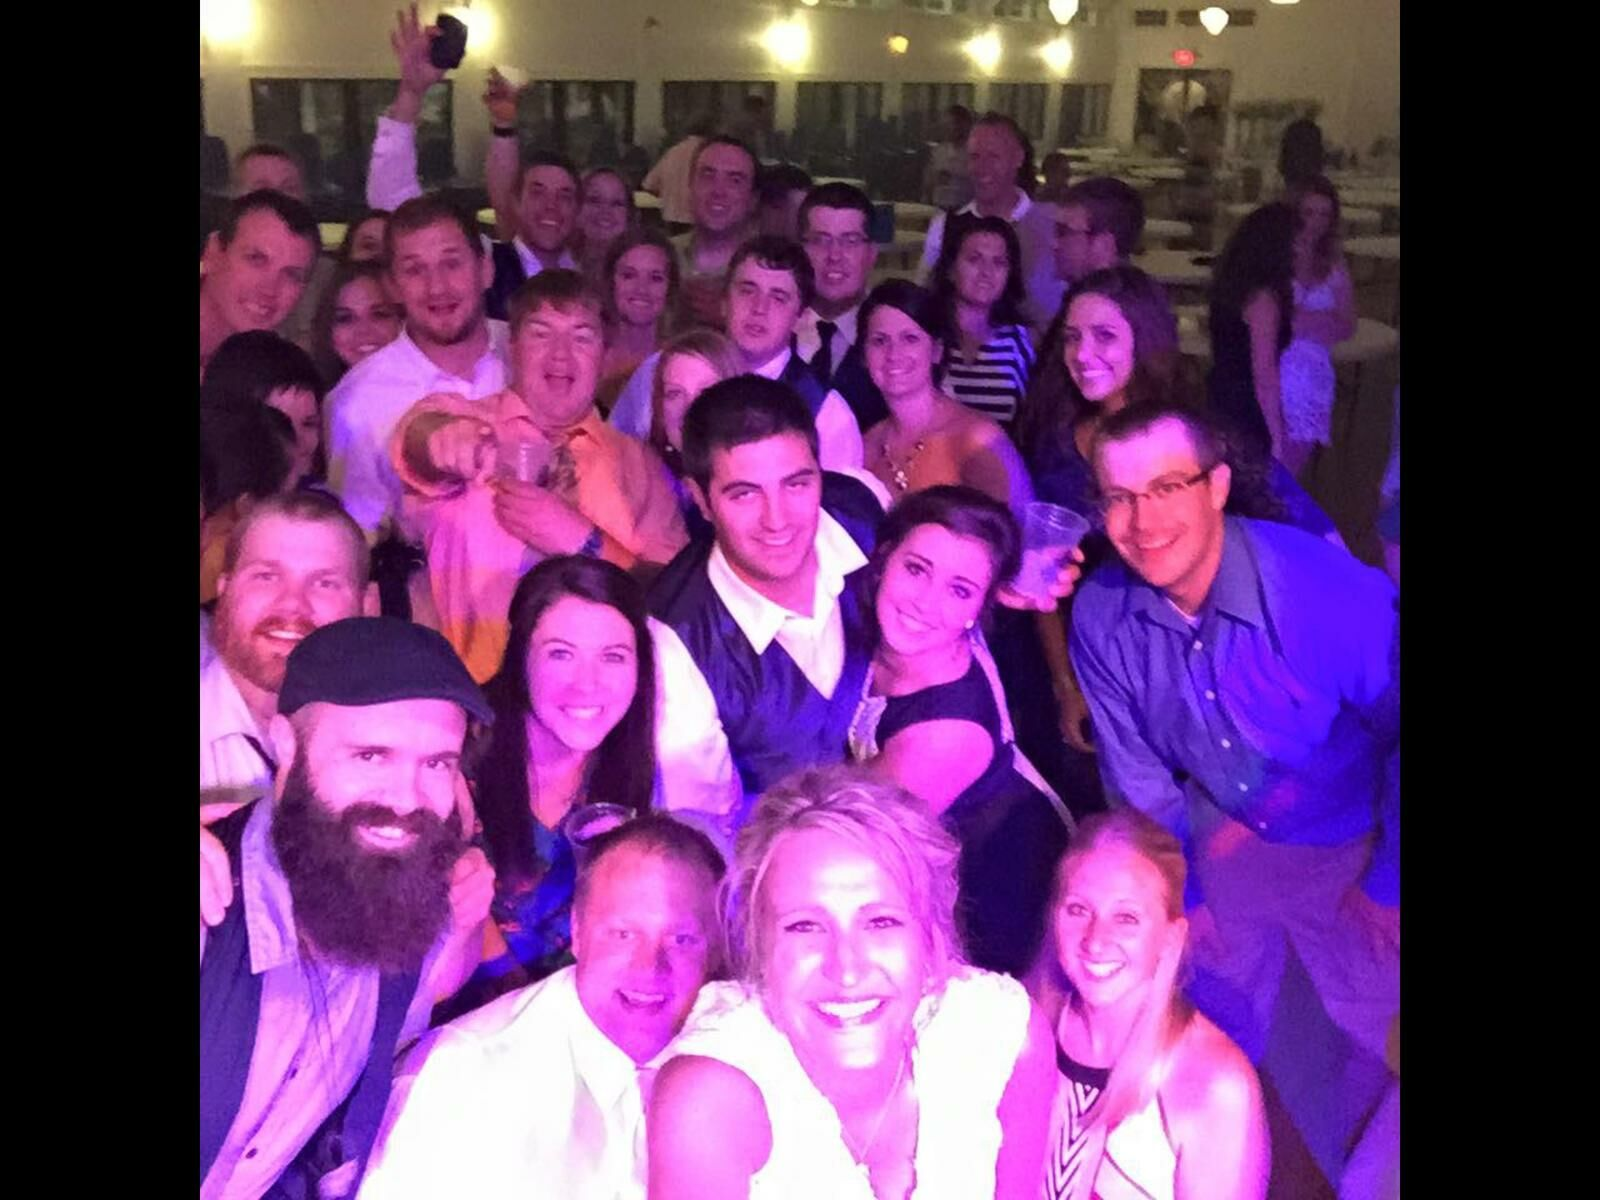 Live Wedding Bands in Minneapolis, MN - The Knot